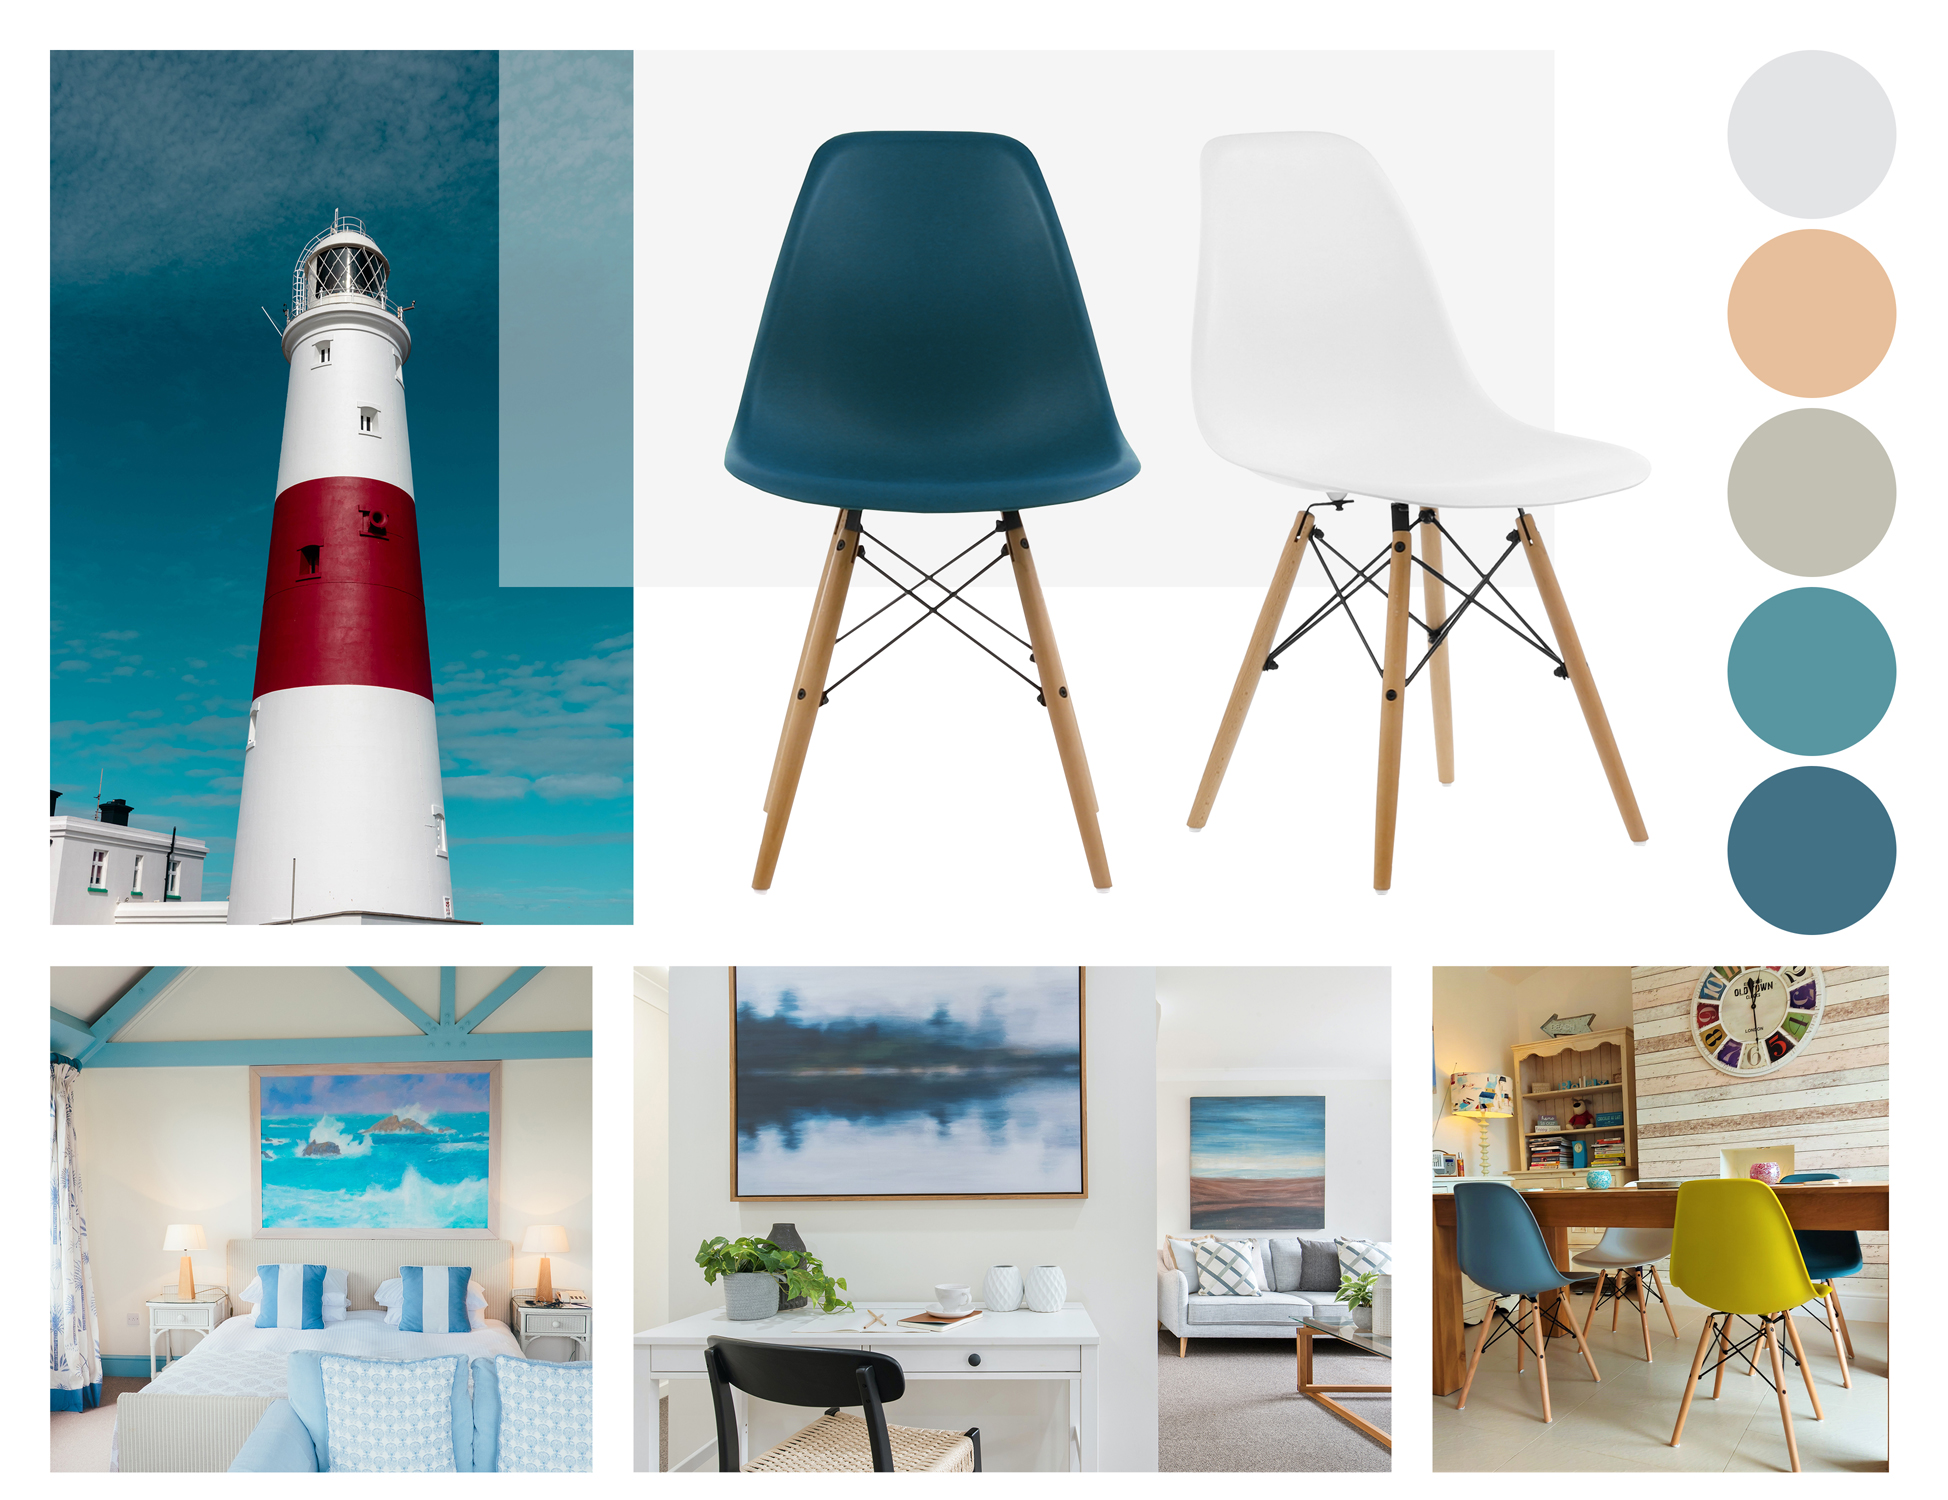 Eames Eiffel Chairs Used In Coastal Homes